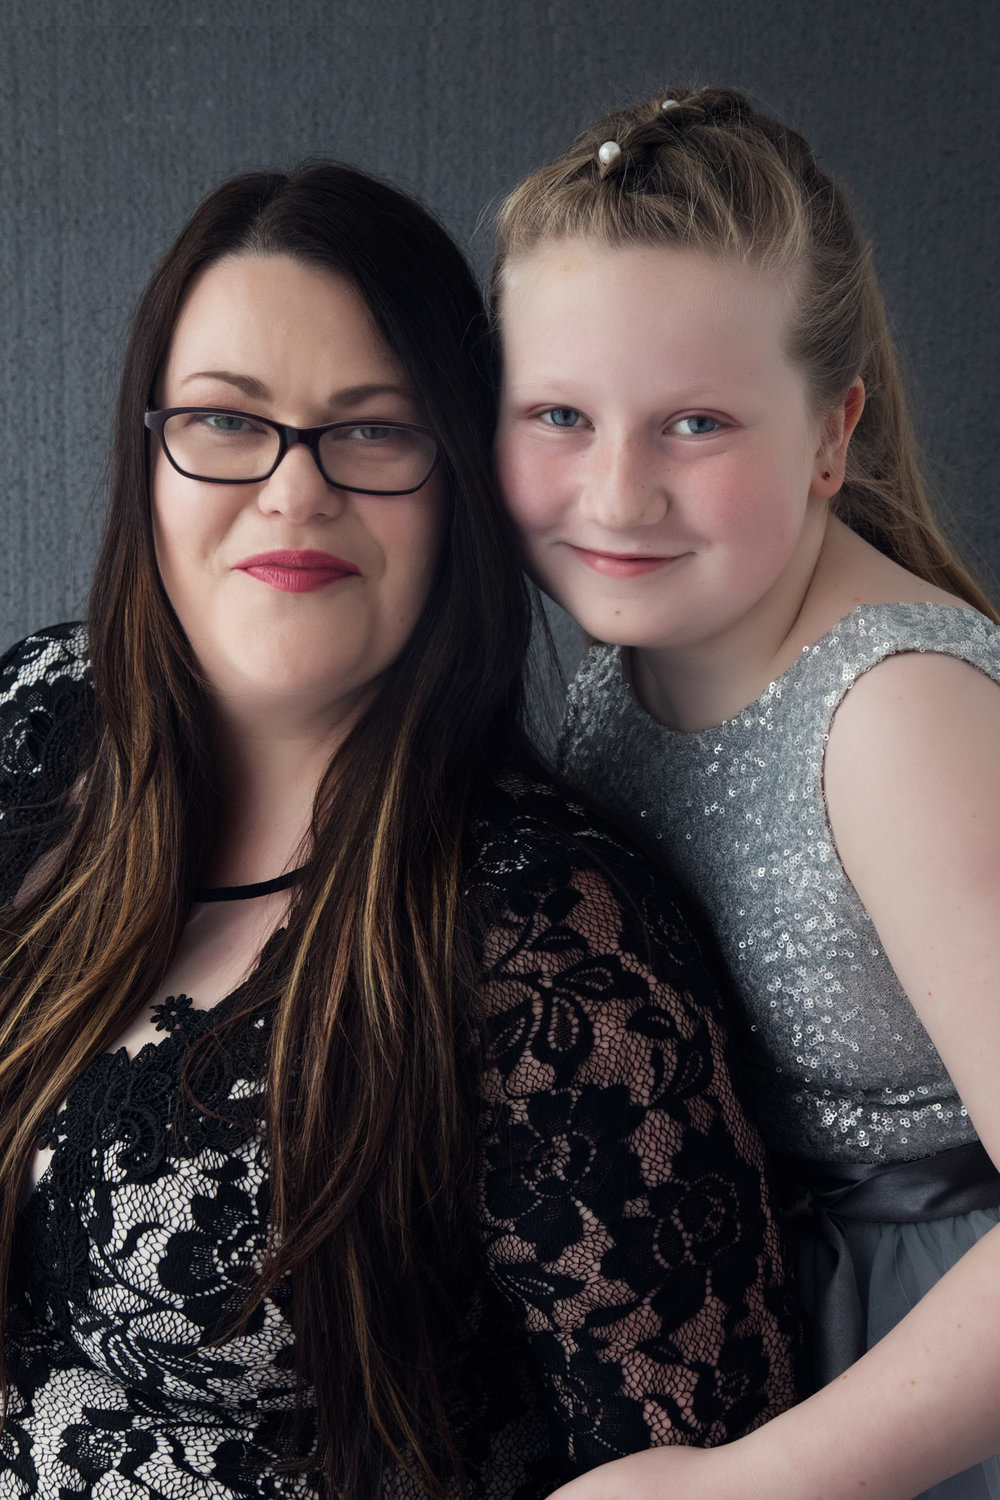 mum and daughter photoshoot grantham lincolnshire